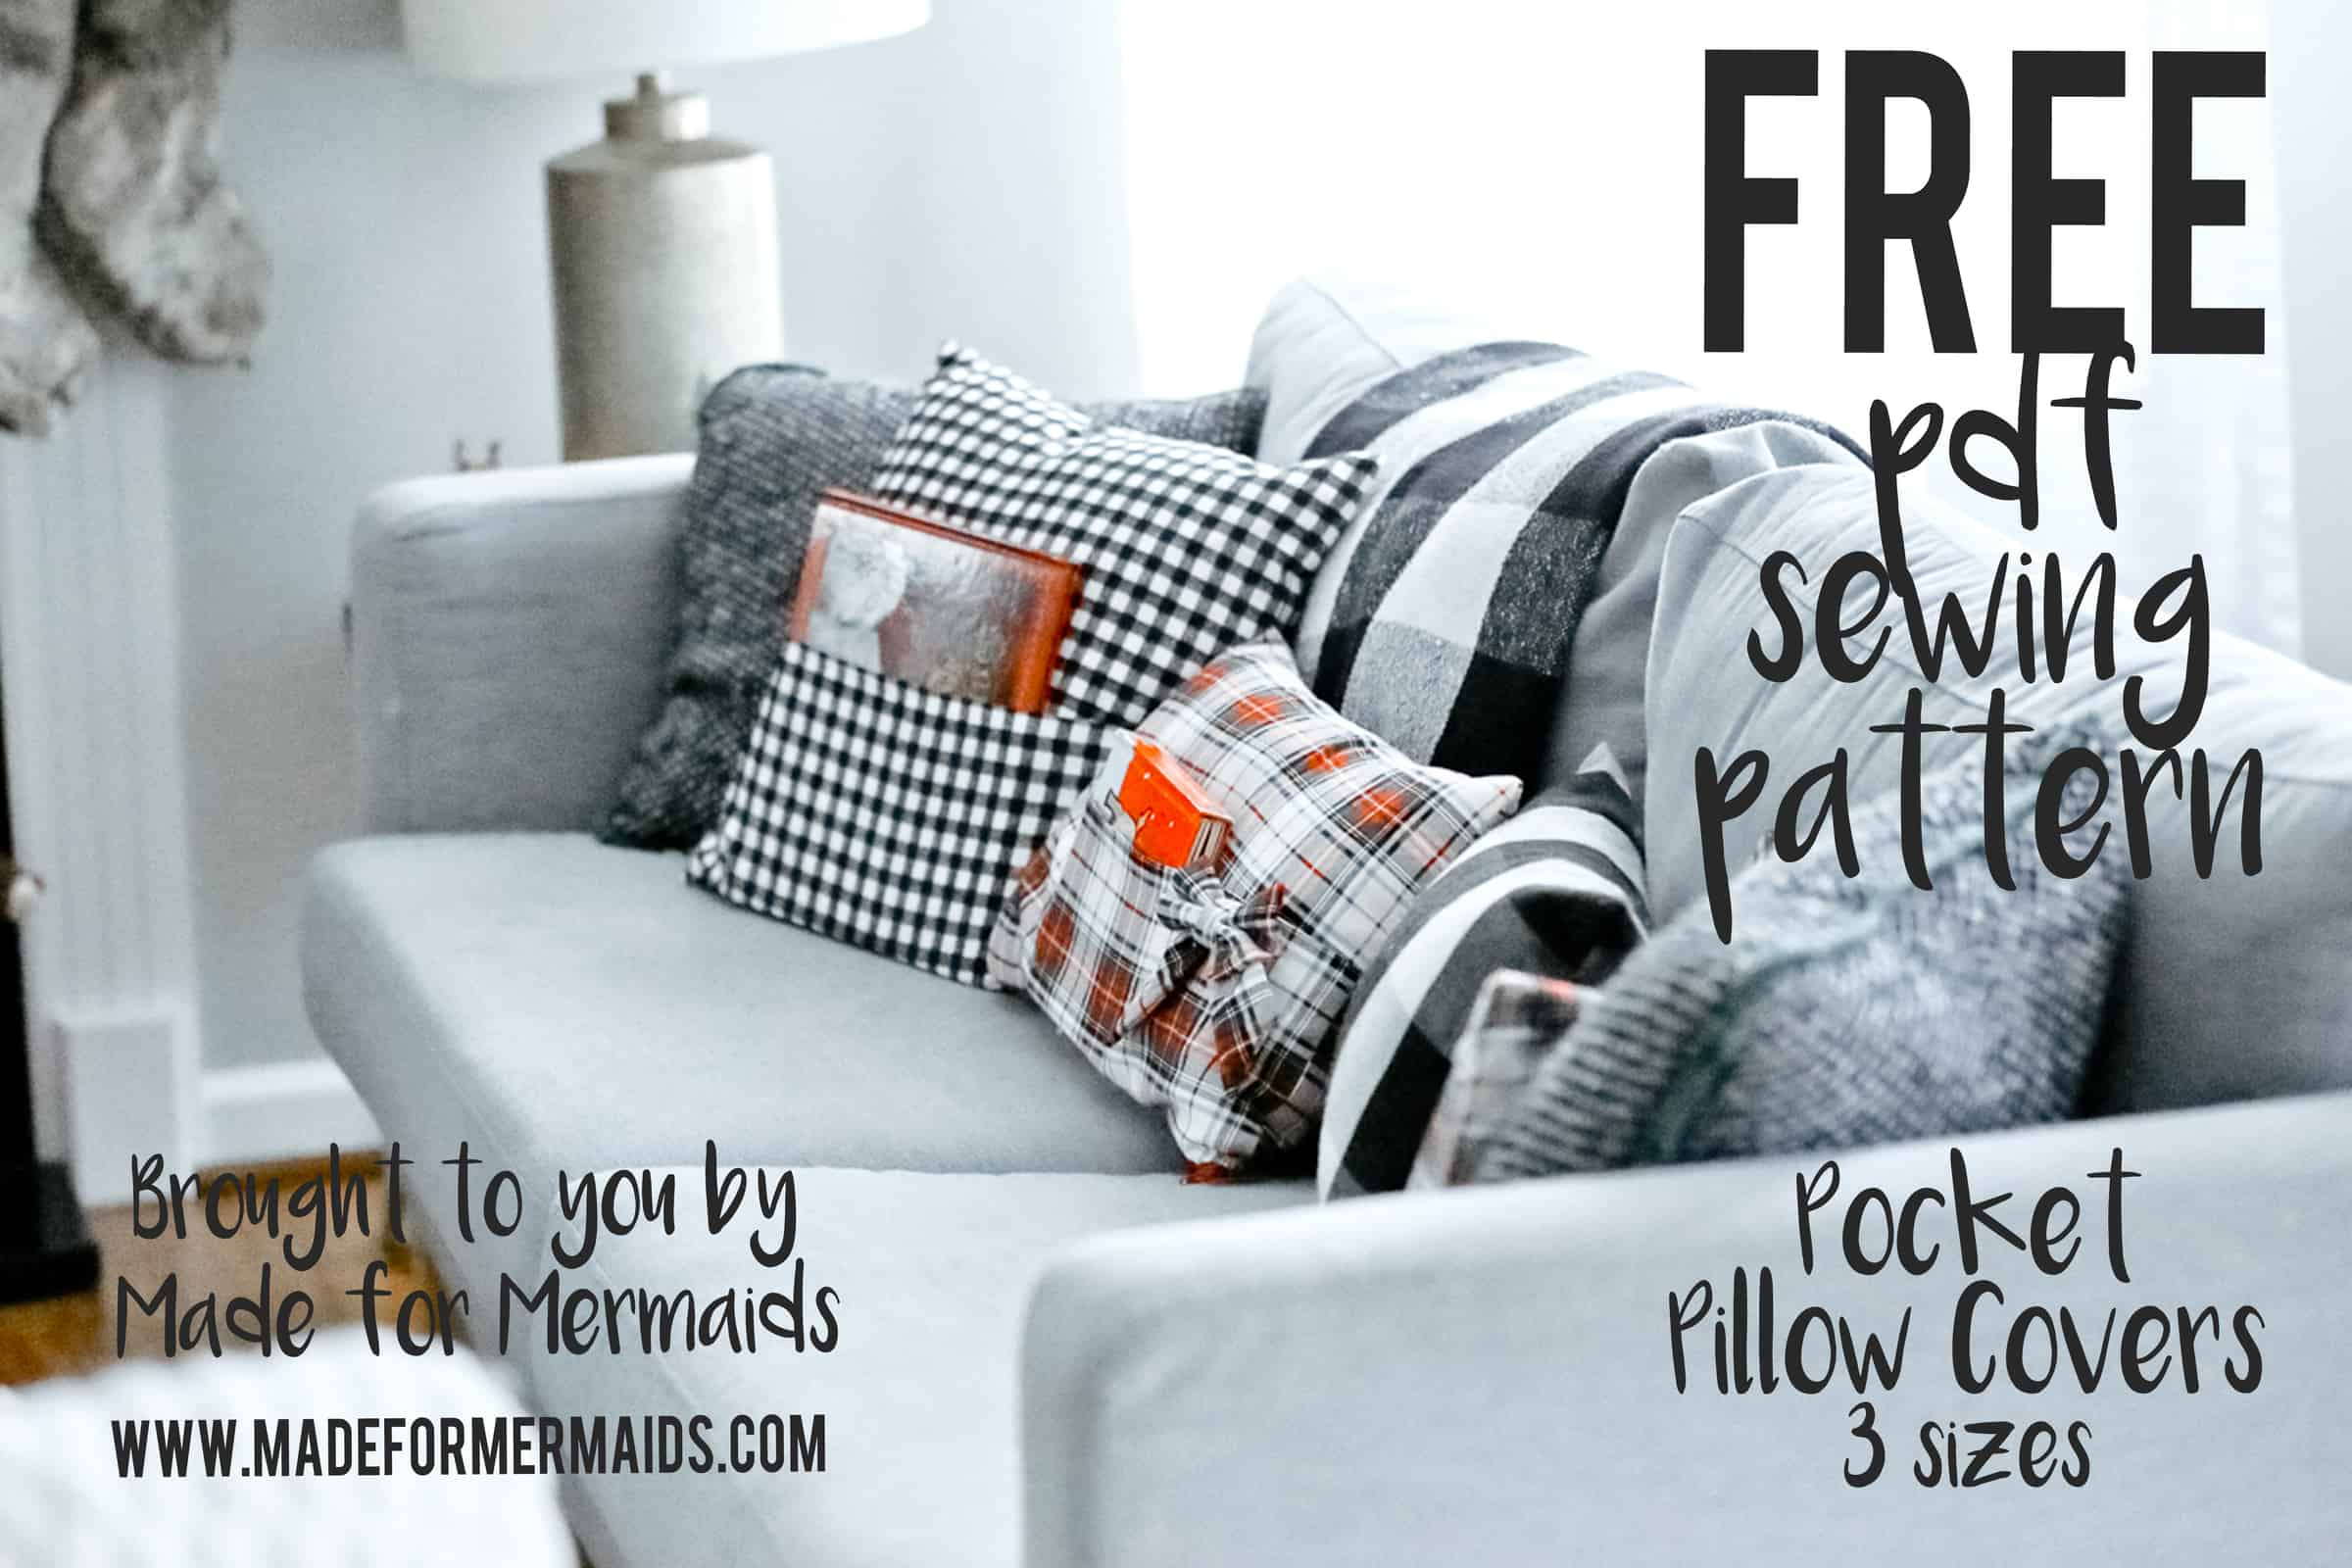 free pdf pattern pocket pillow covers and cut files